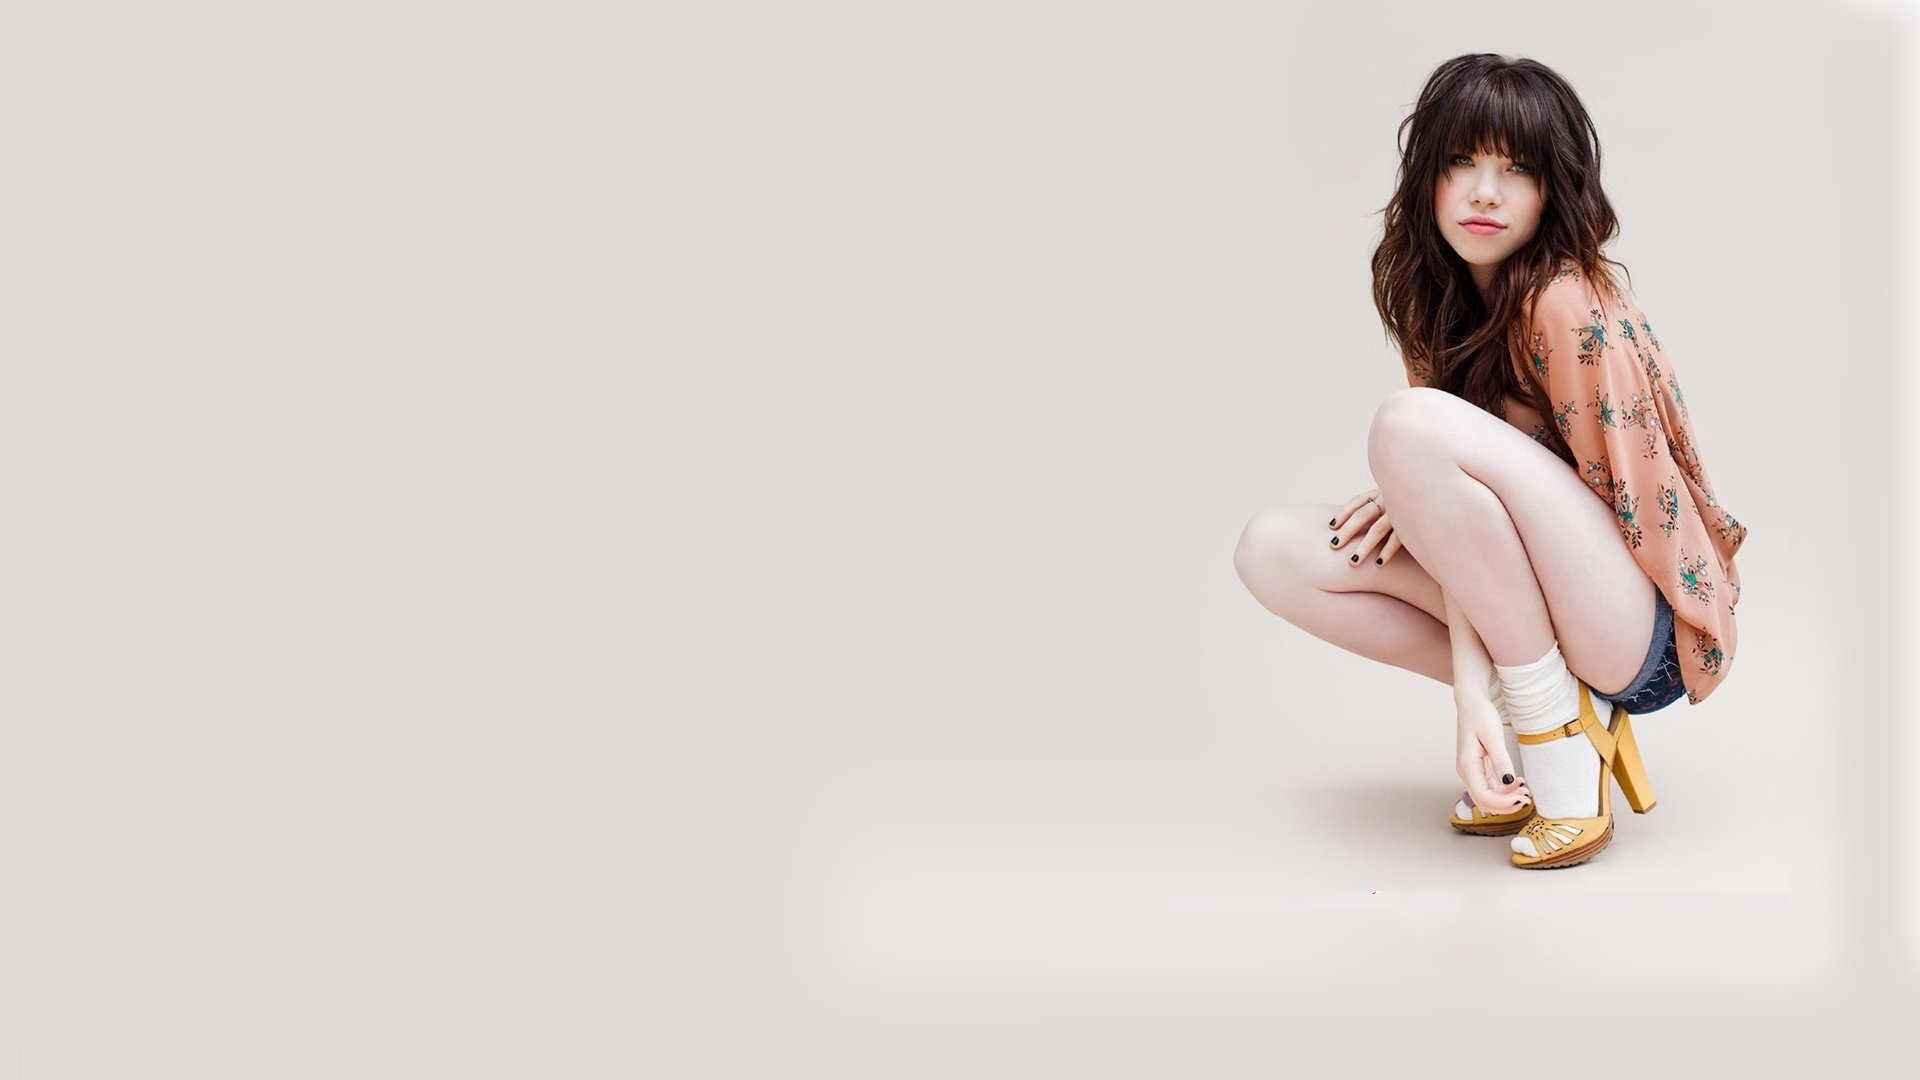 12 carly rae jepsen hd wallpapers | background images - wallpaper abyss